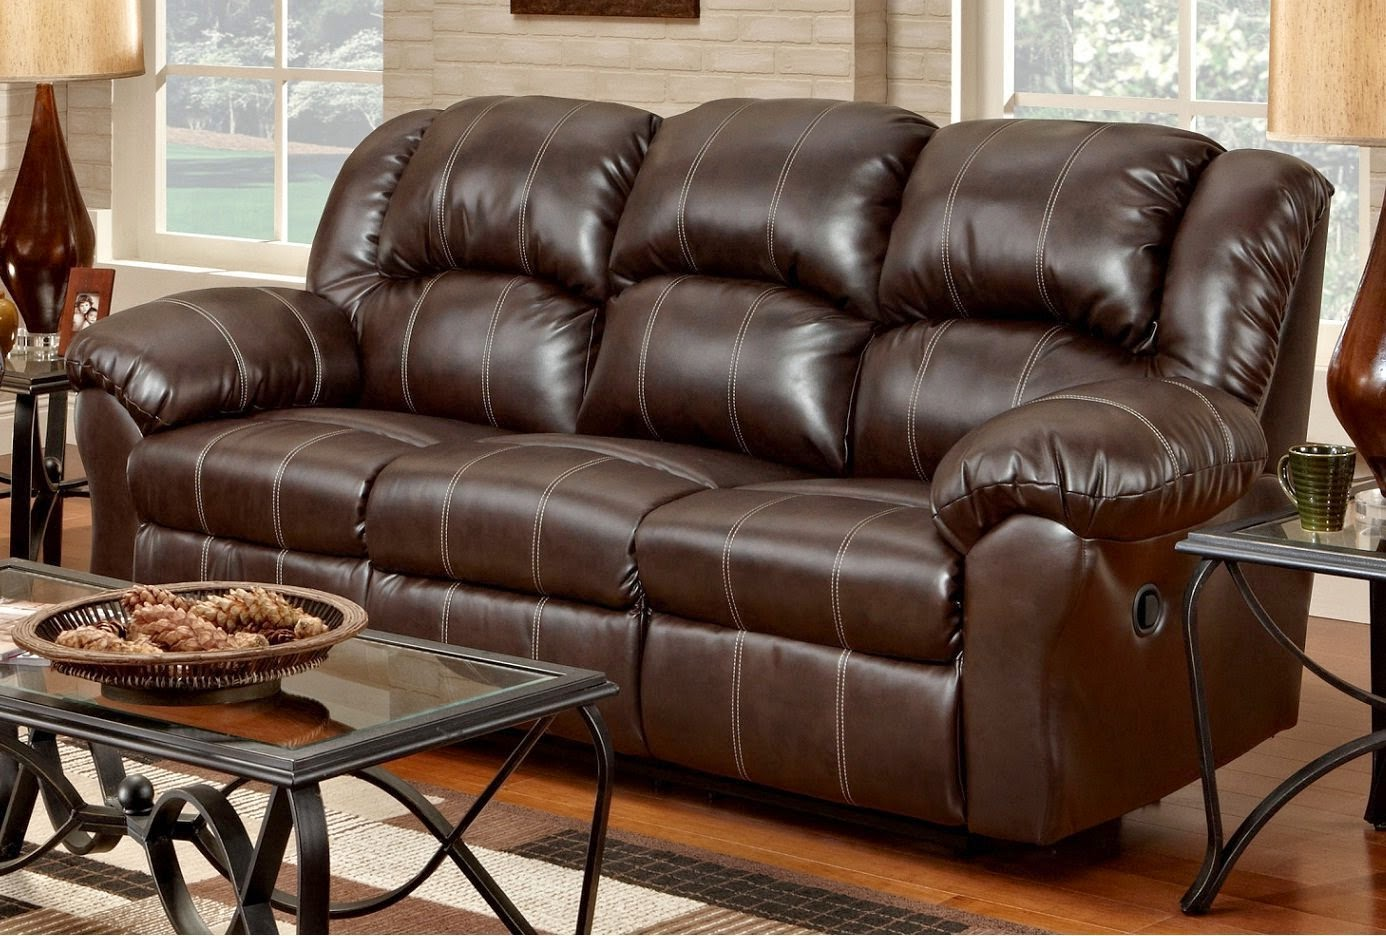 Roundhill Brown Alpha Leather Dual Reclining Sofa